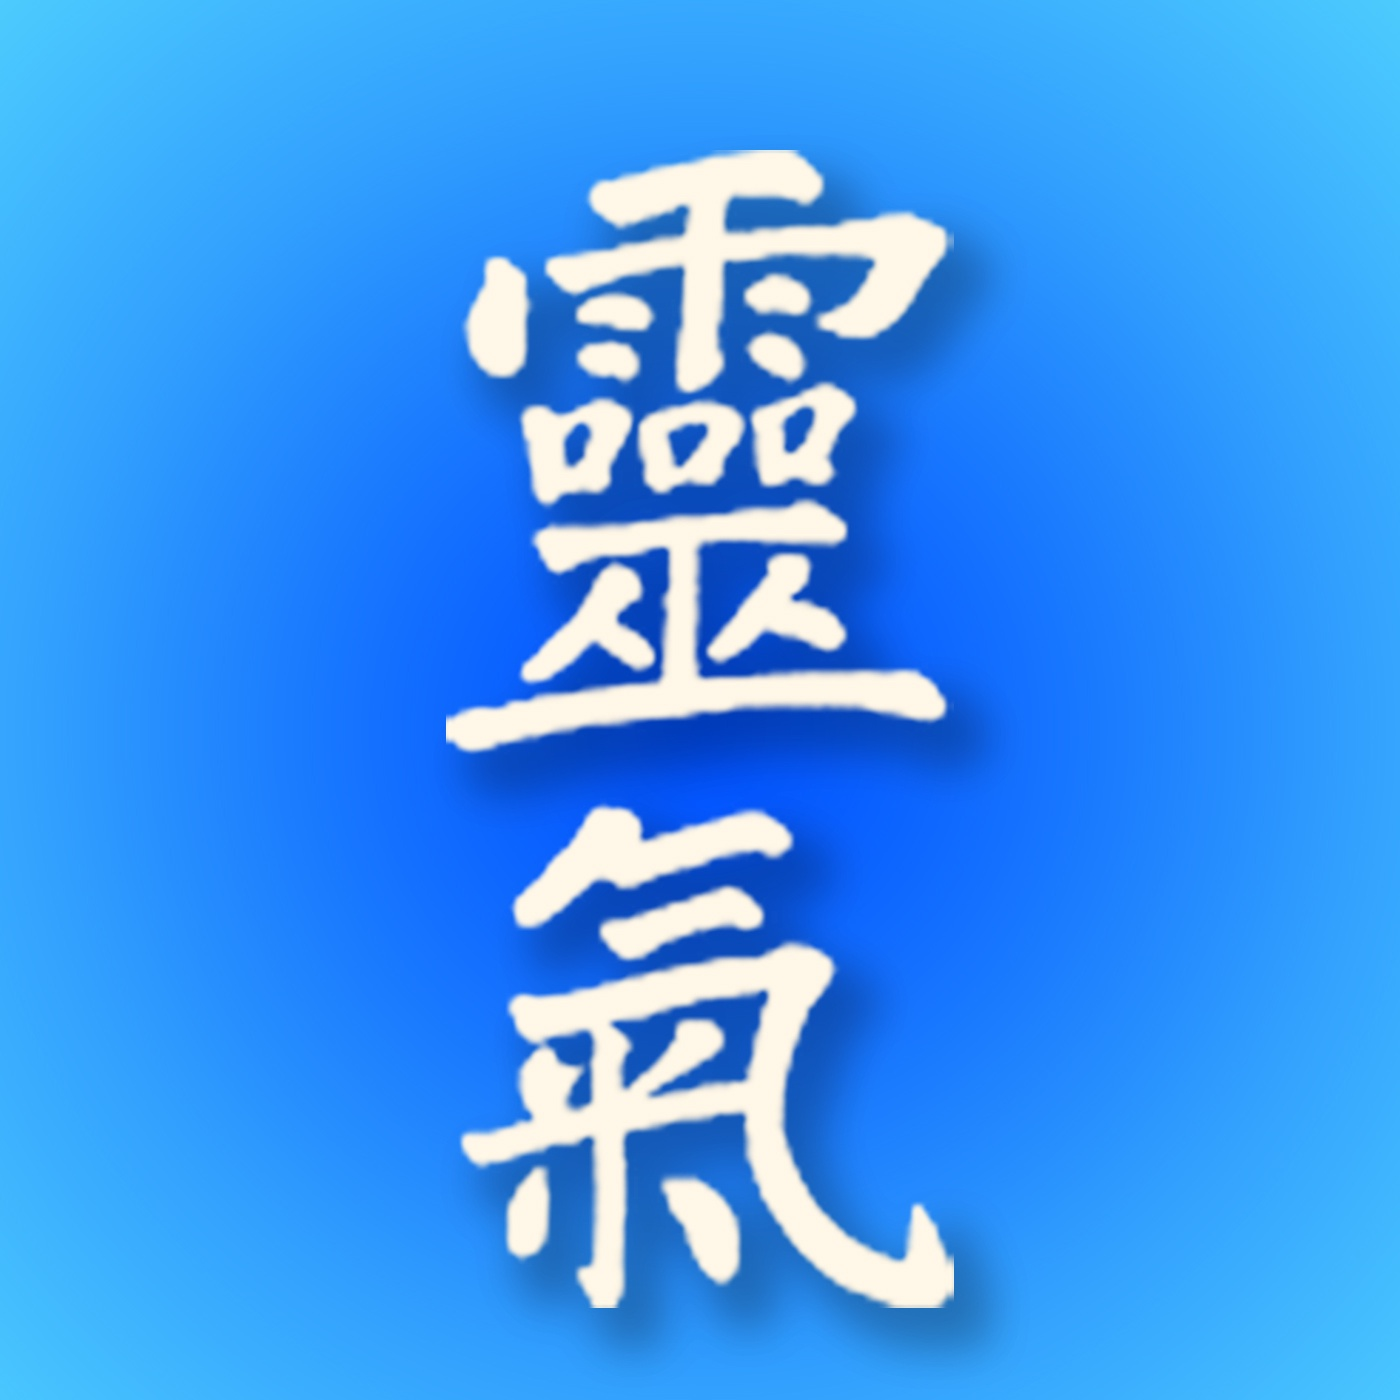 The meaning of traditional in Usui Reiki